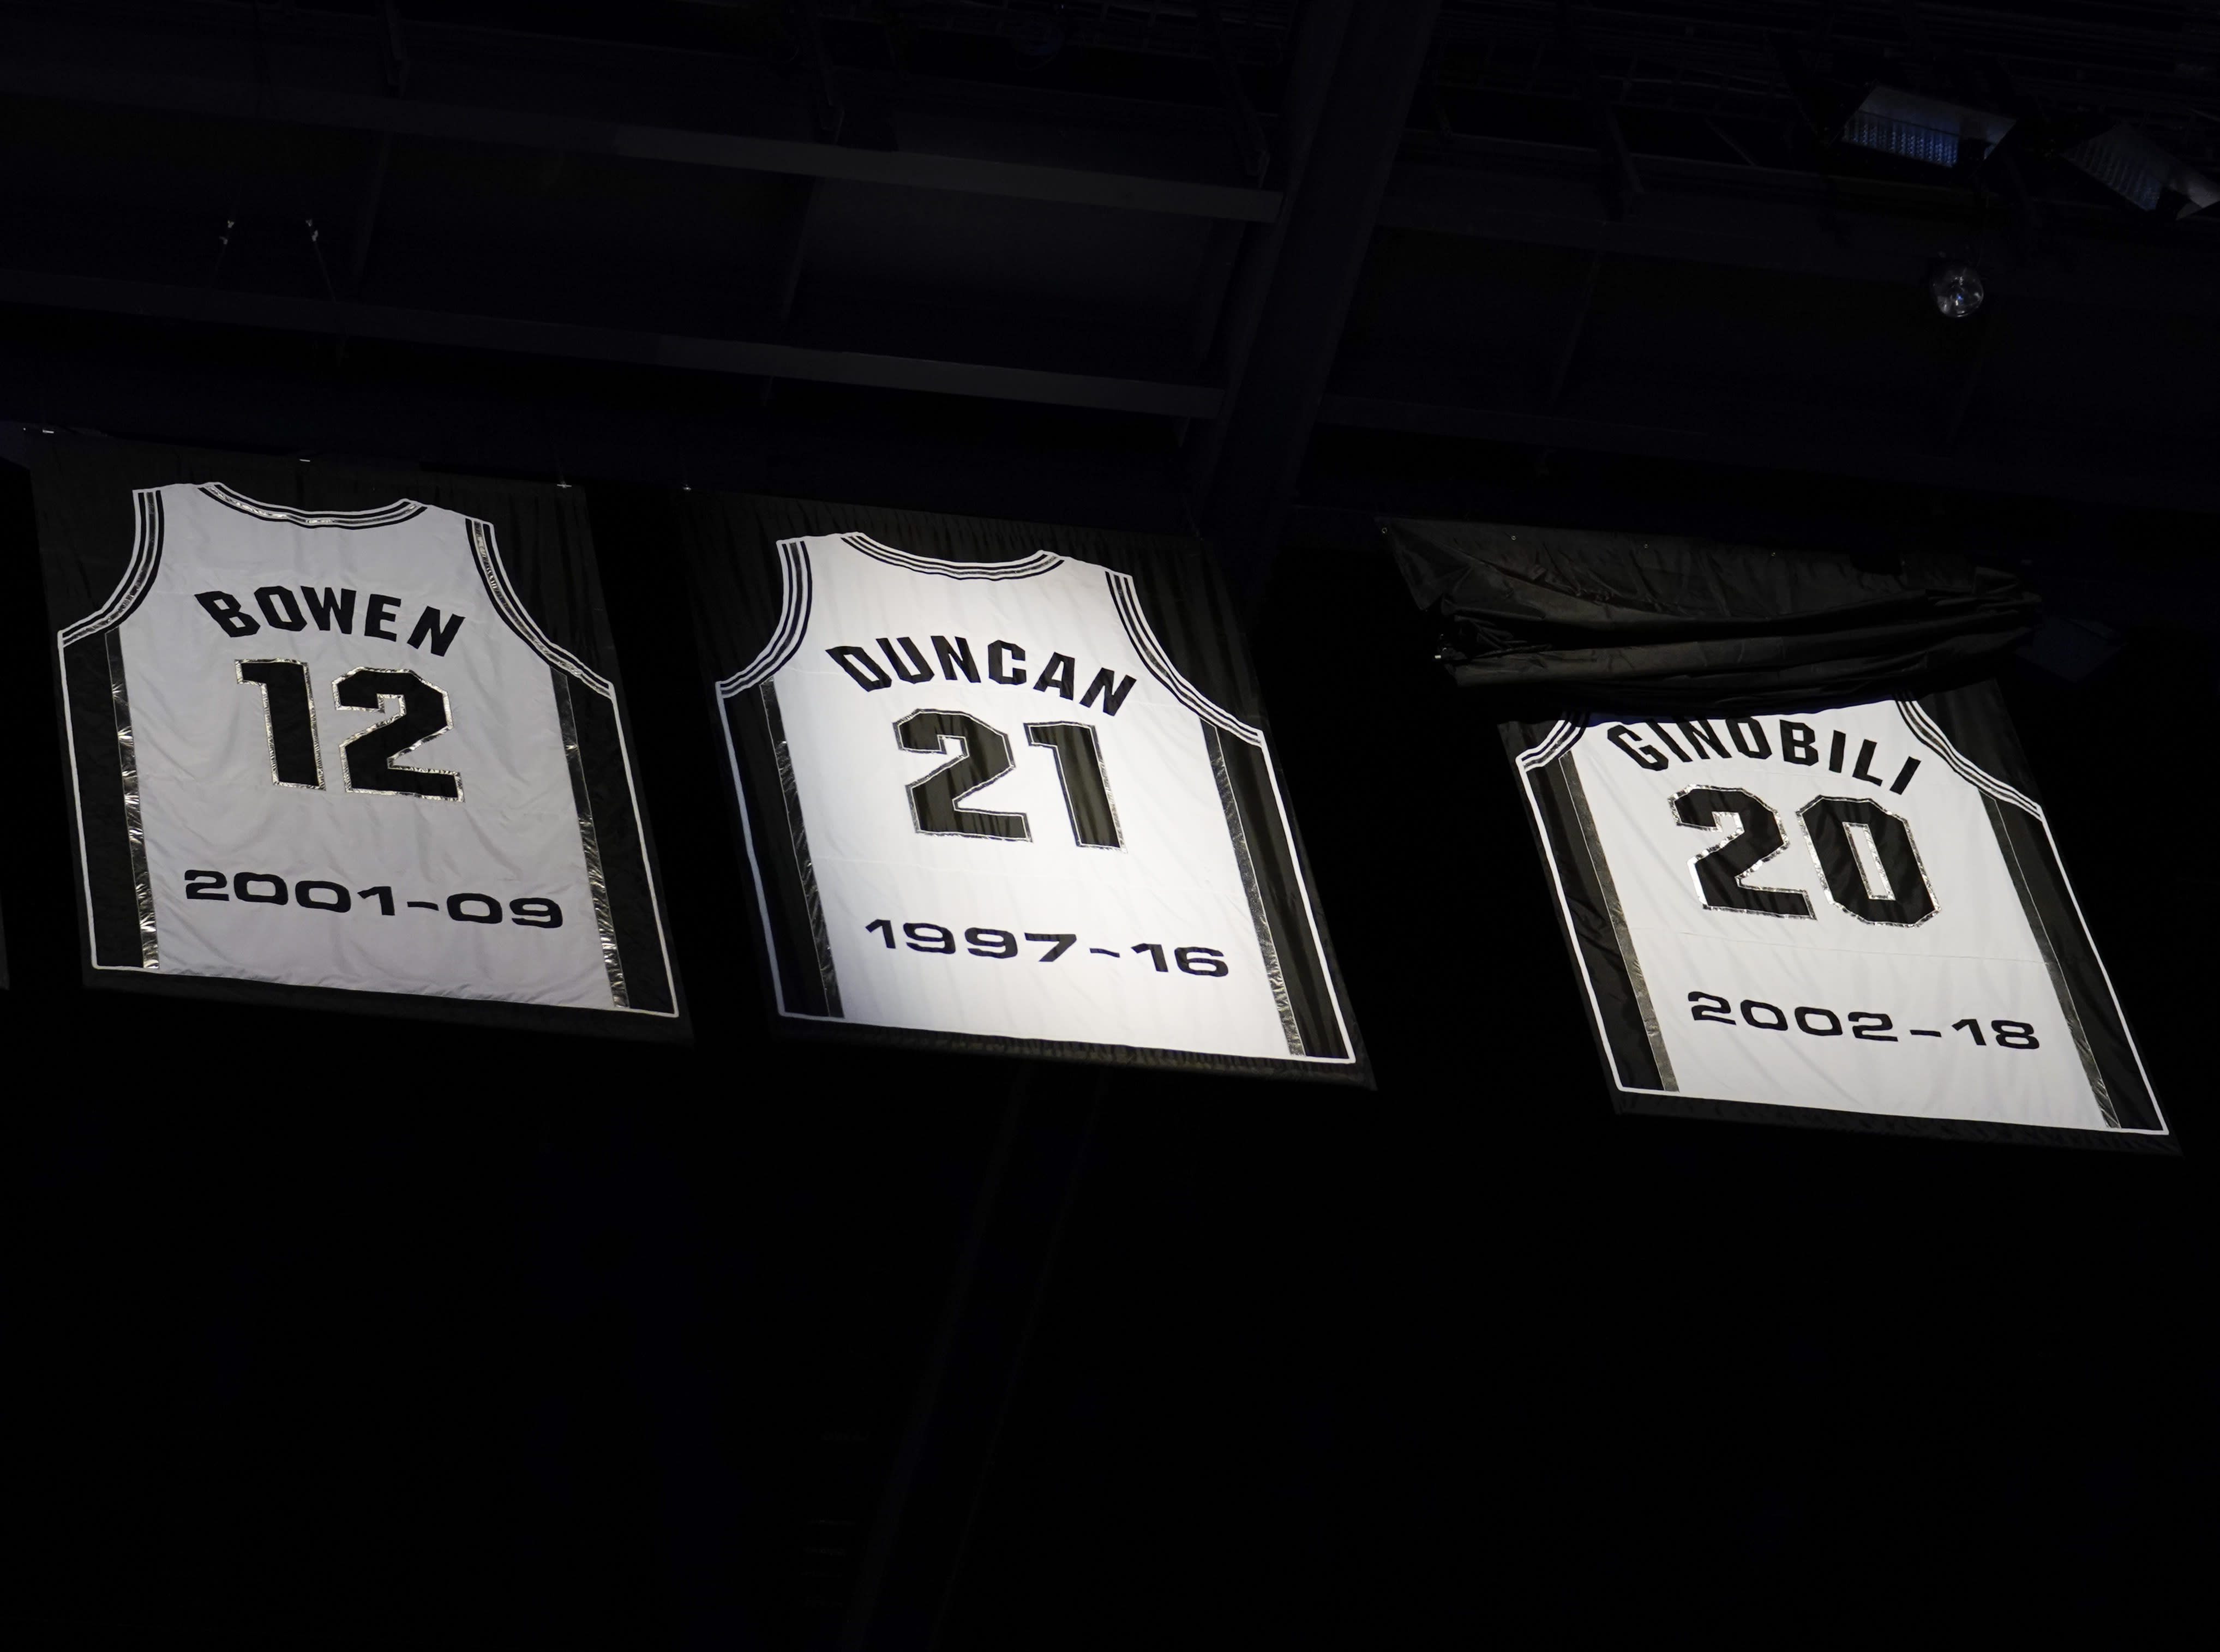 finest selection 5a318 c737d Spurs retire Ginobili's jersey during emotional ceremony